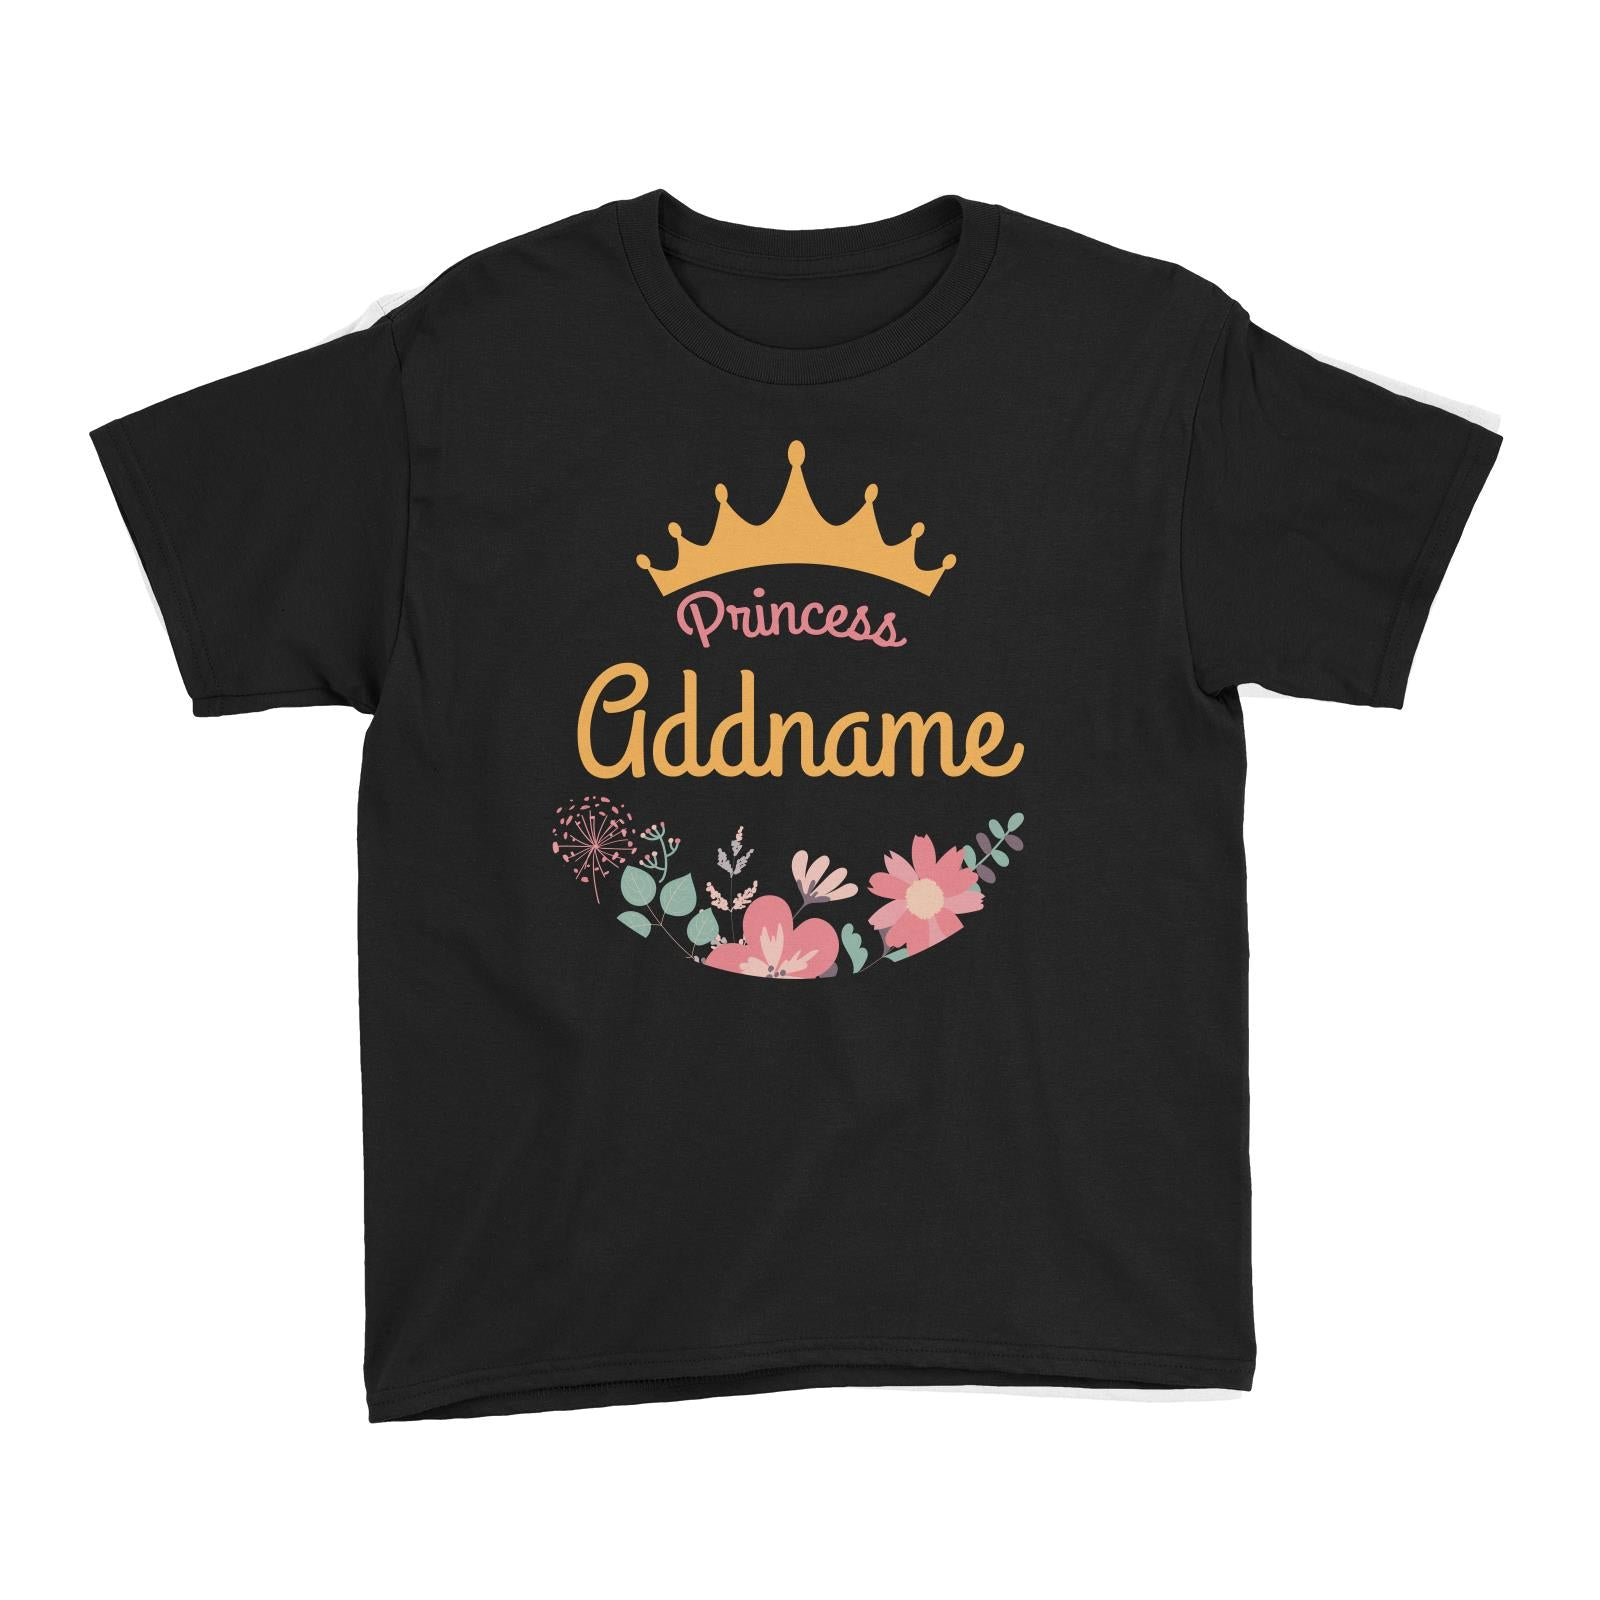 Princess Addname with Tiara and Flowers 2 Kid's T-Shirt